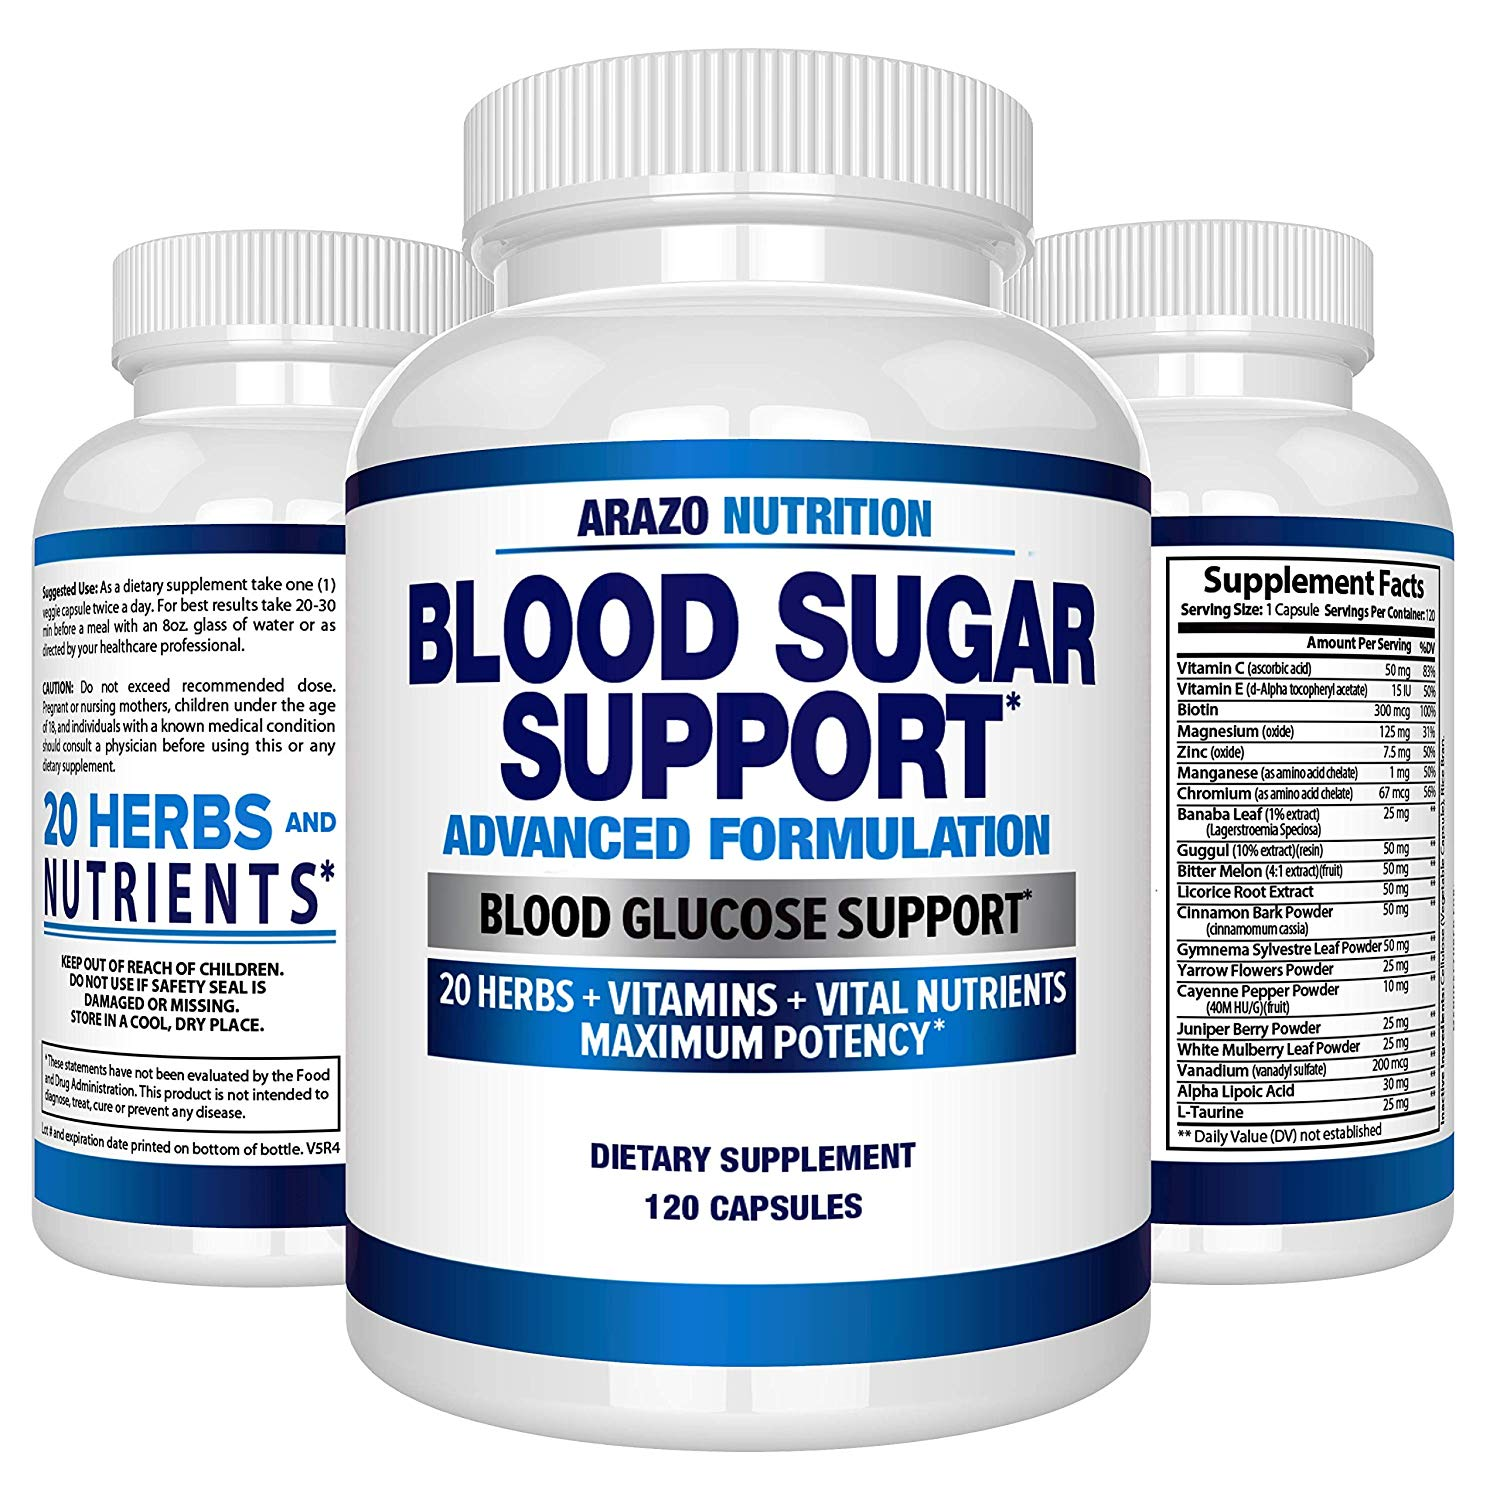 Review of - Blood Sugar Support Supplement - 20 HERBS & Multivitamin for Blood Sugar Control by Arazo Nutrition